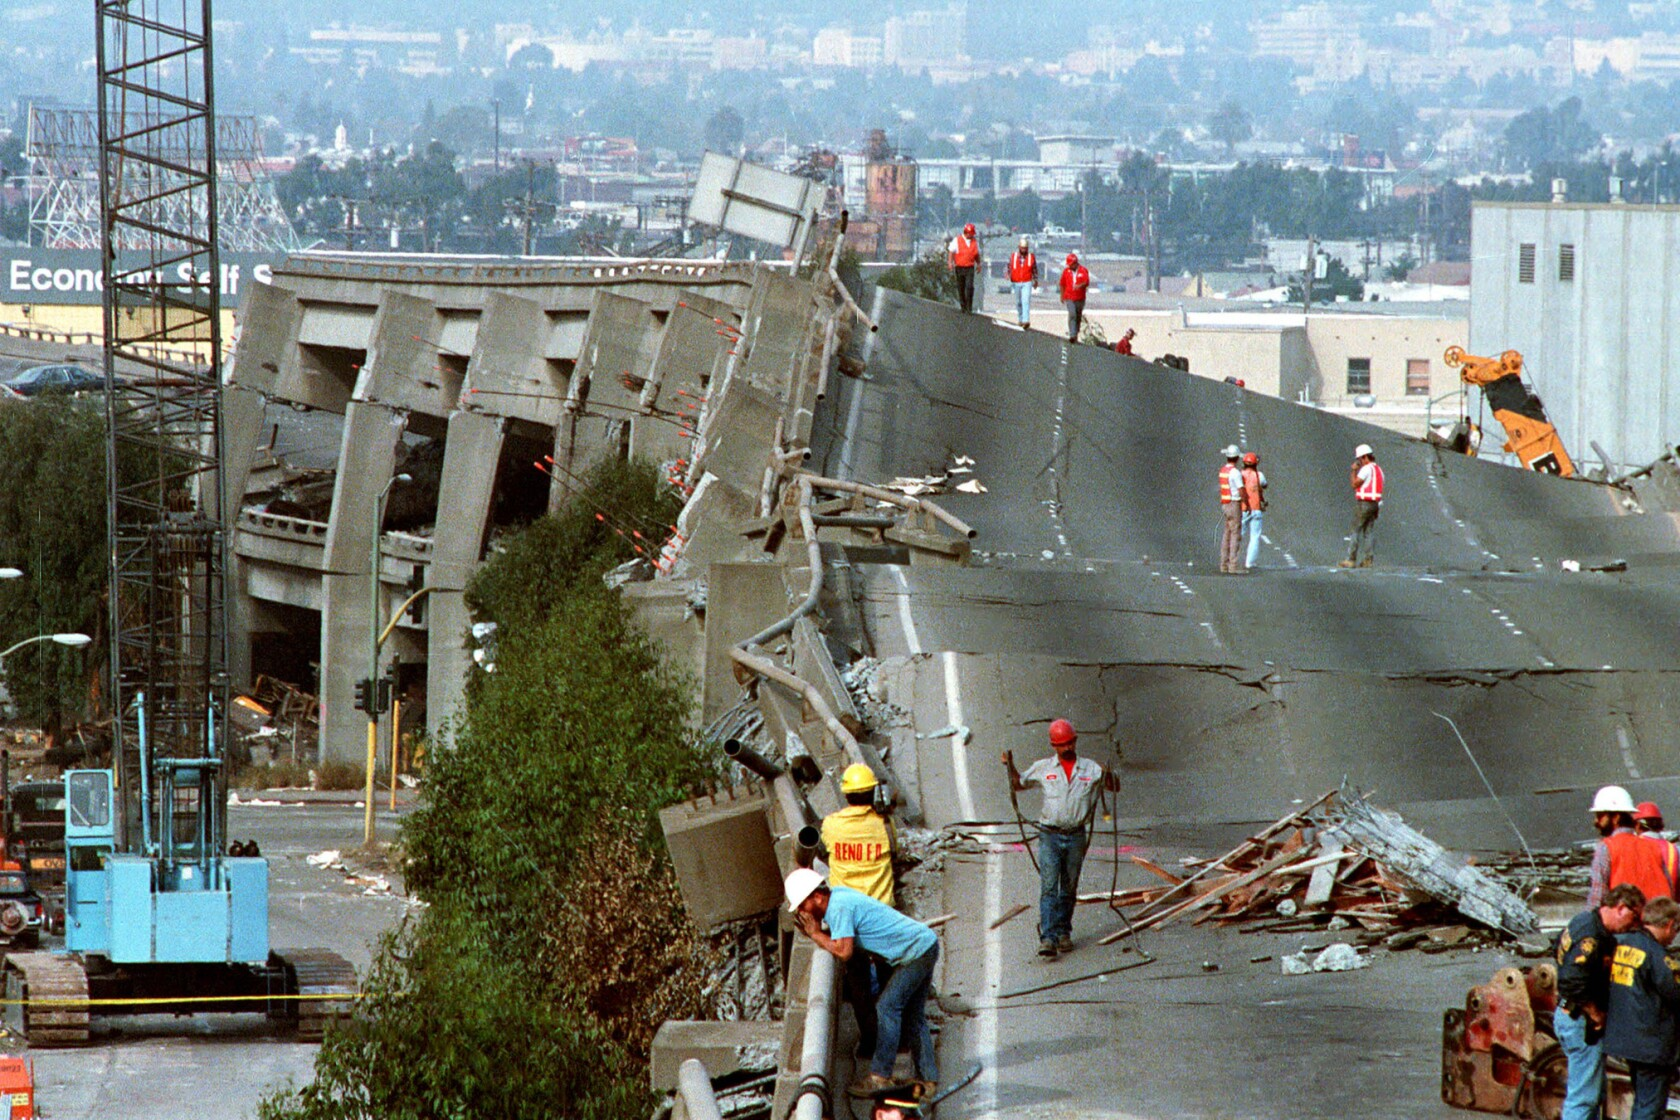 Workers check the damage to Interstate 880 in Oakland after it collapsed during the Loma Prieta earthqakes. (image)